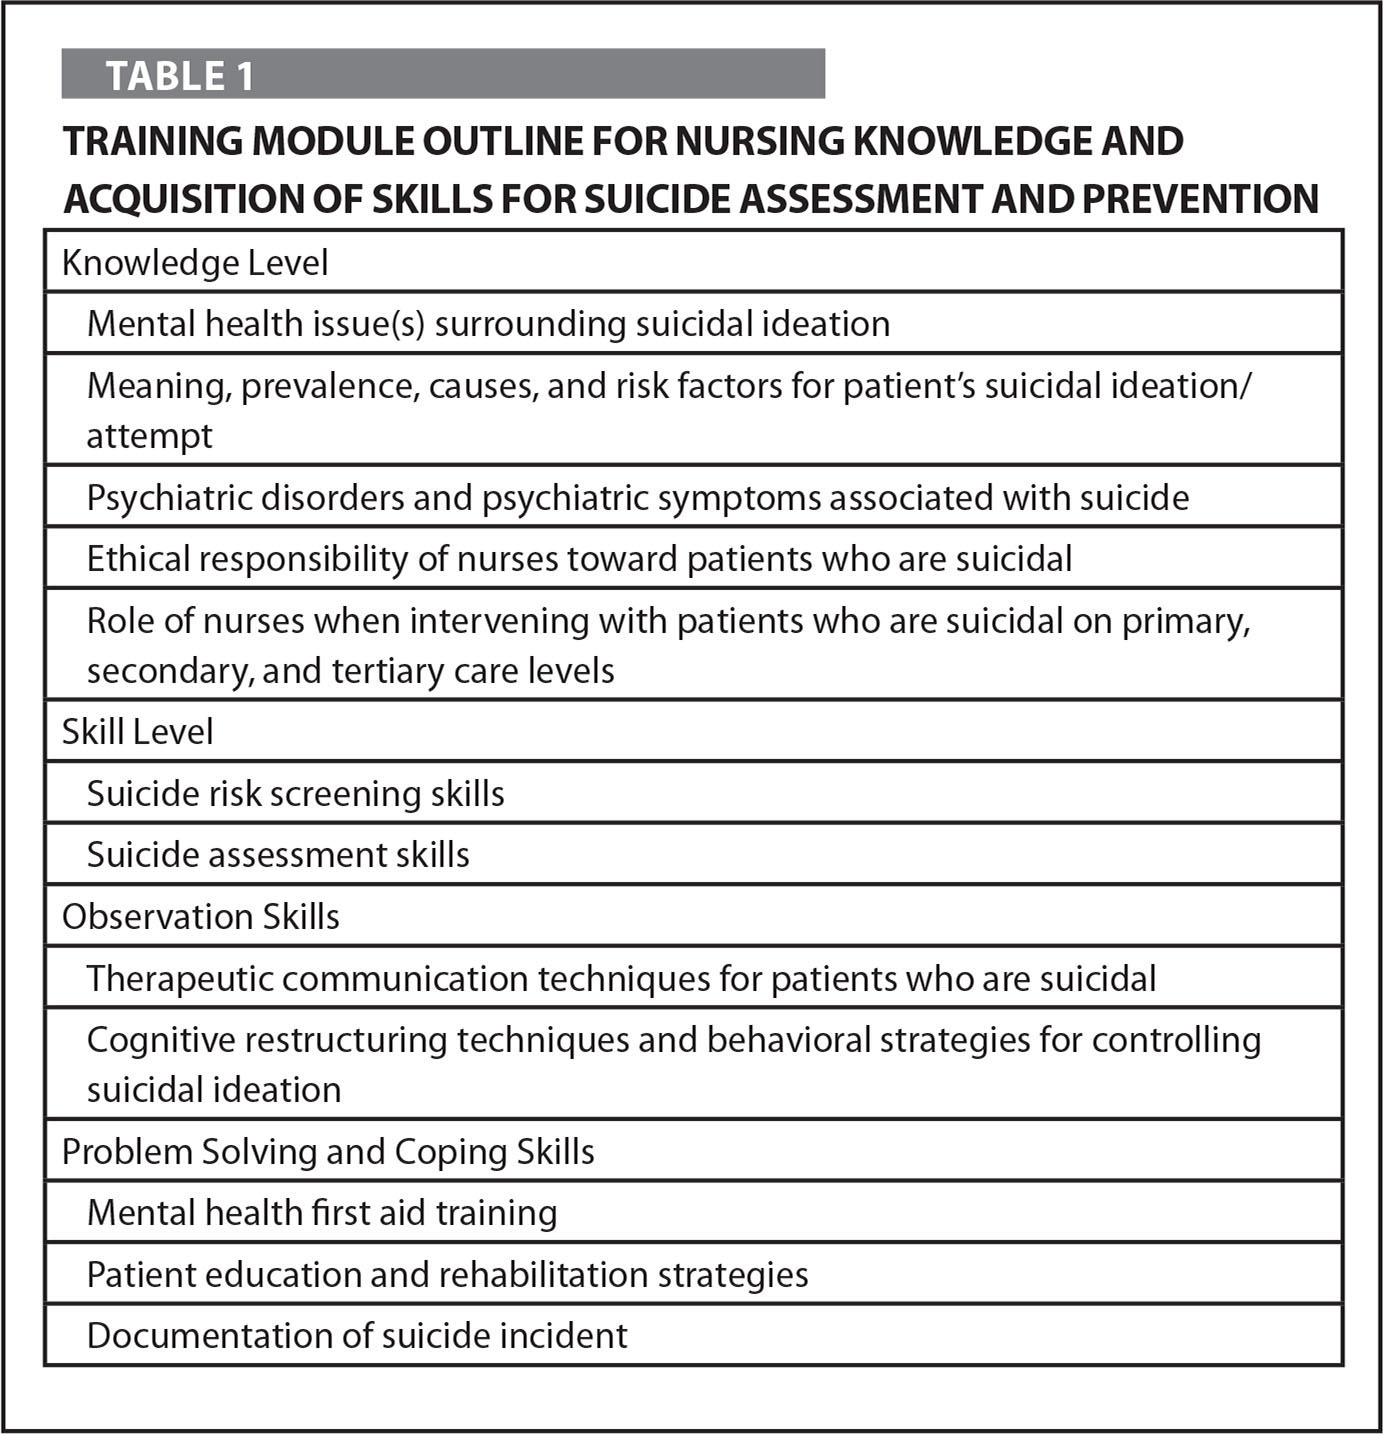 Training Module Outline for Nursing Knowledge and Acquisition of Skills for Suicide Assessment and Prevention